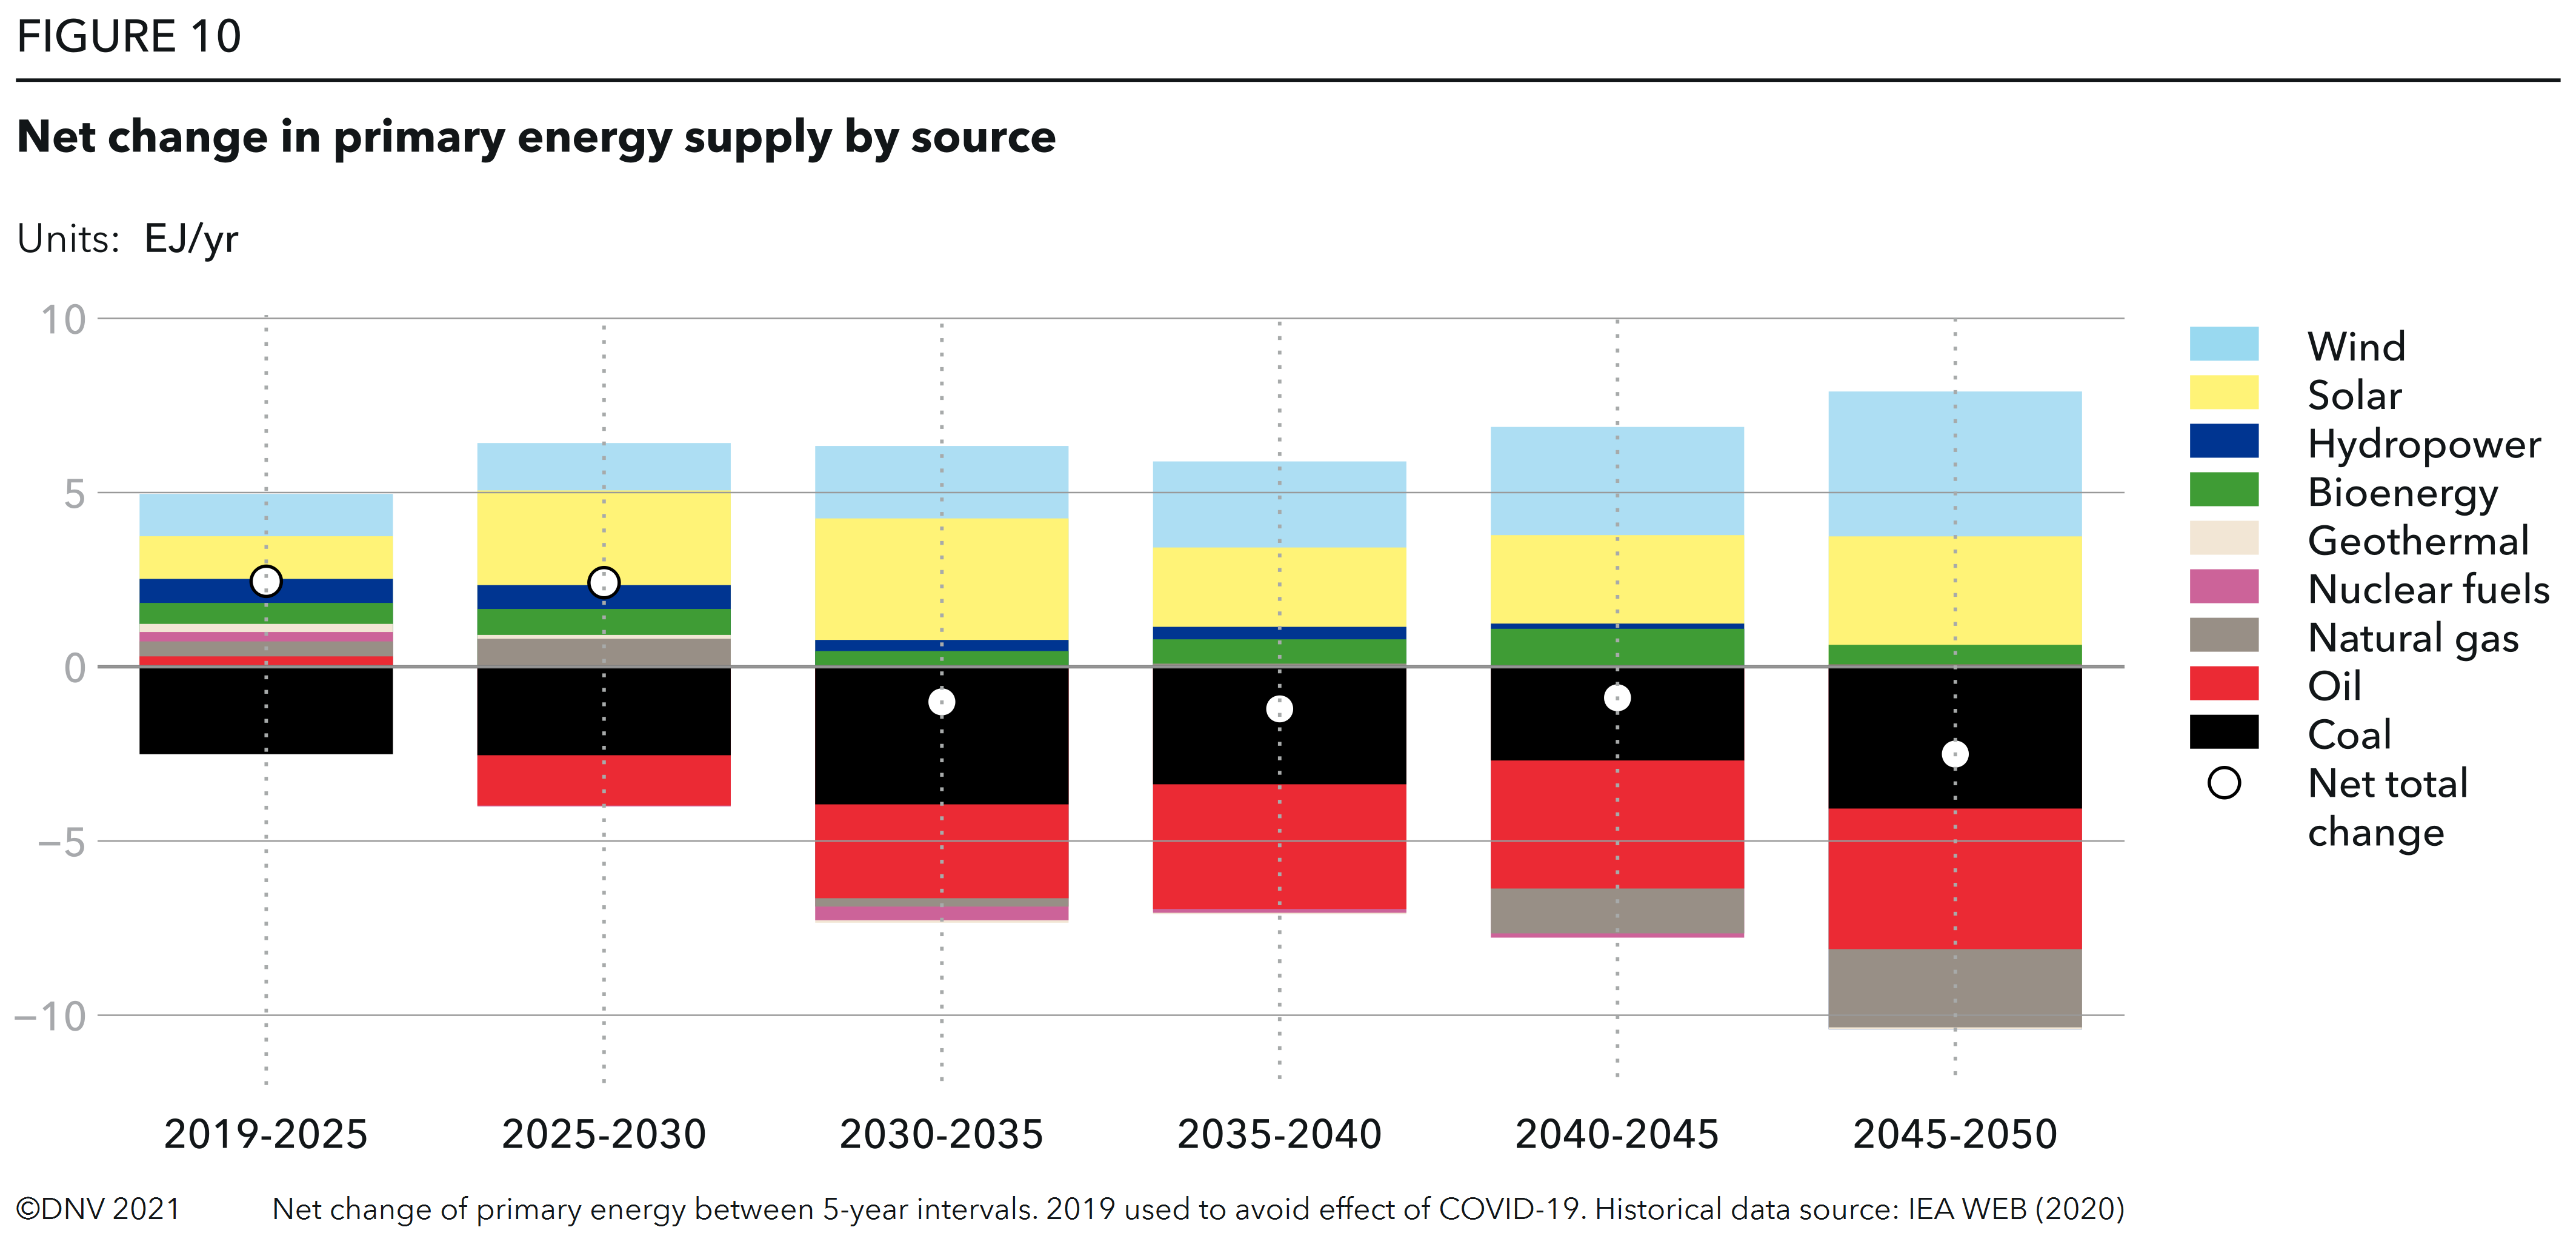 FIGURE 10 Net change in primary energy supply by source